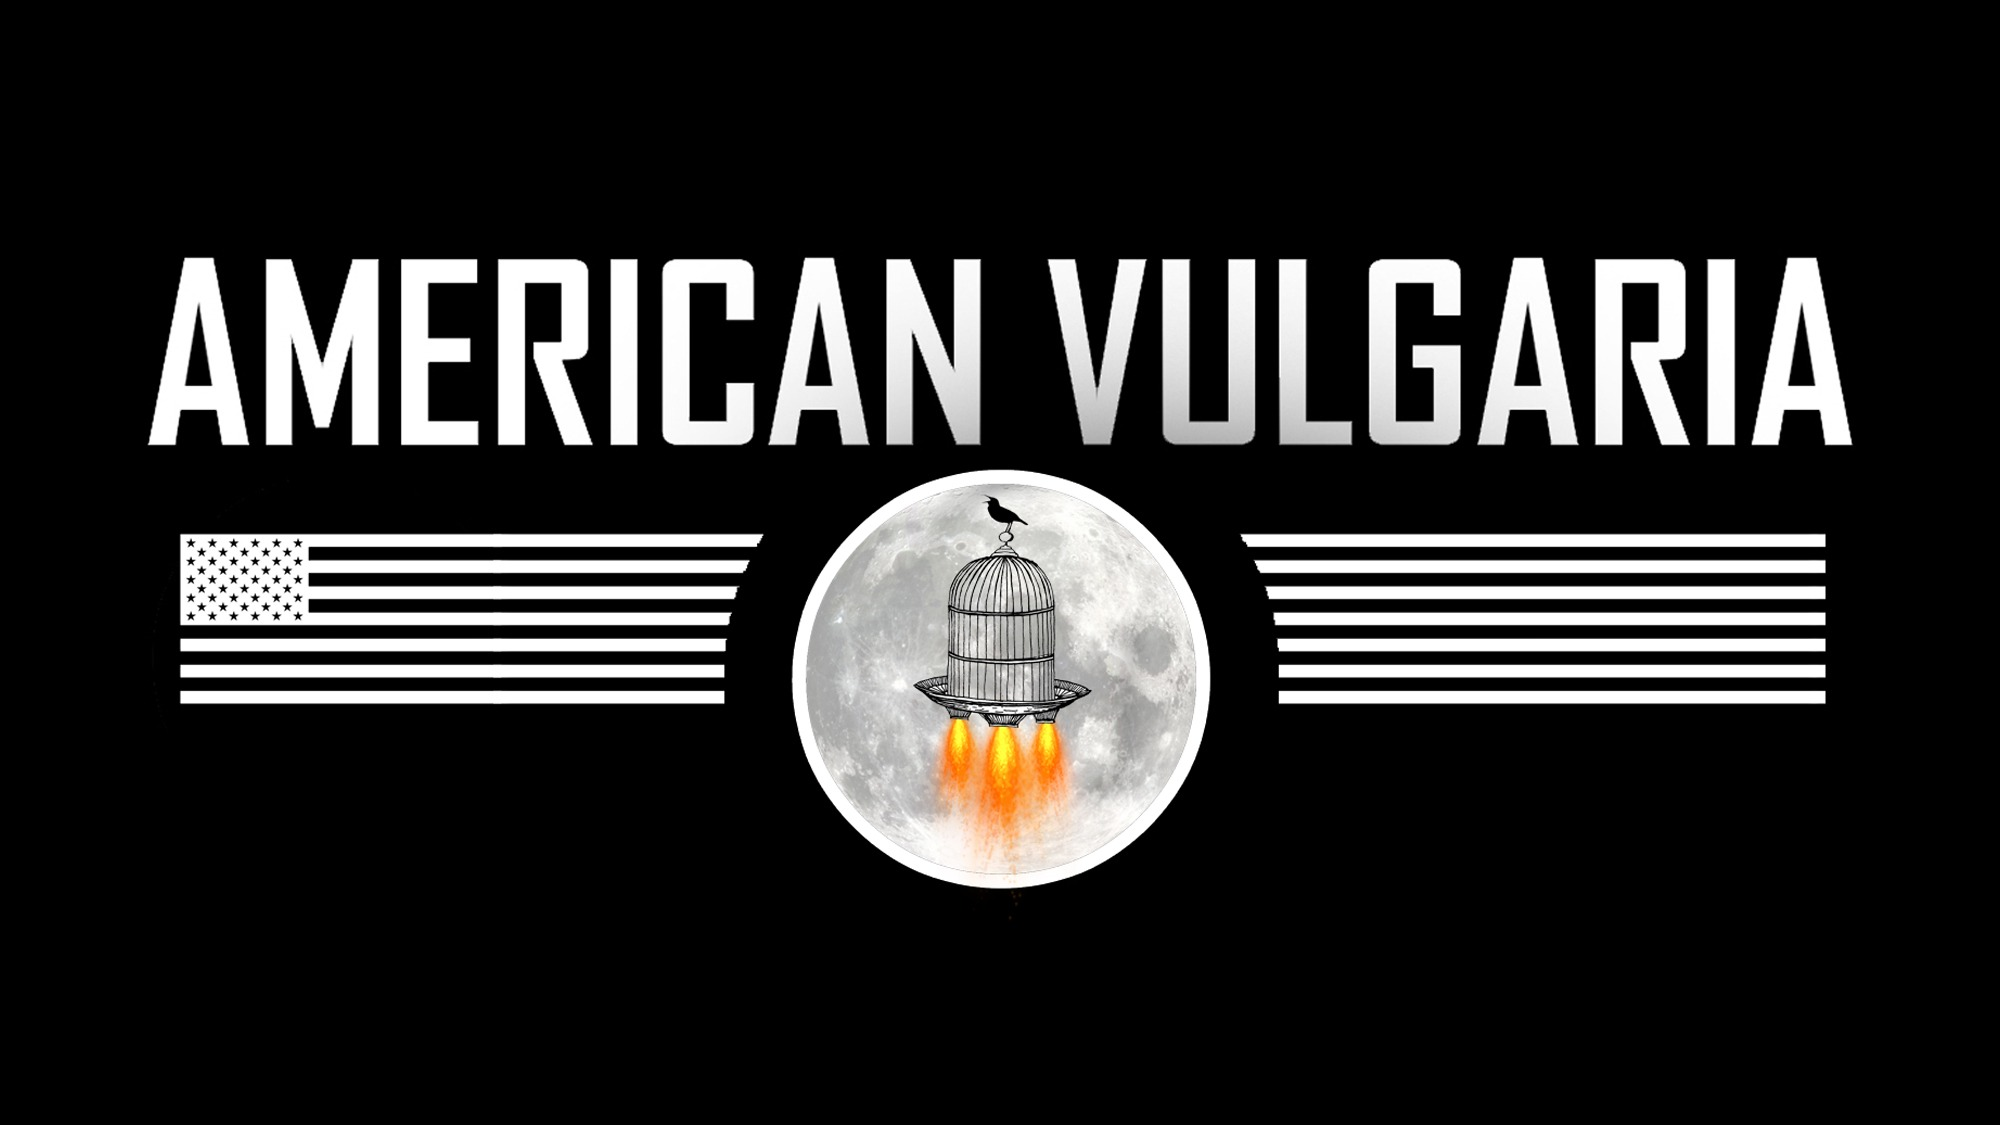 AMERICAN VULGARIA About